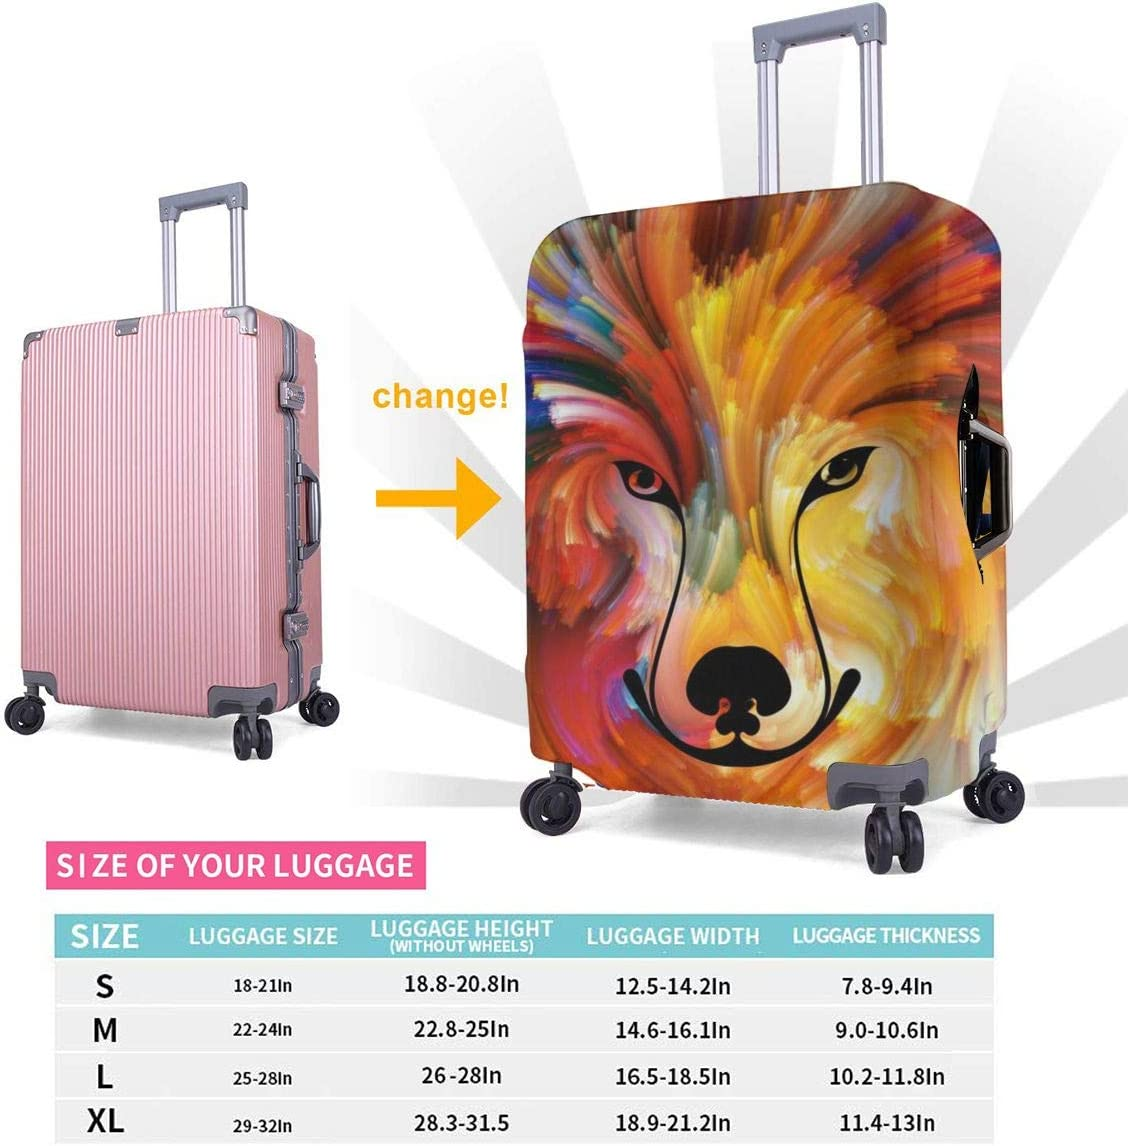 Wolf Art Elastic Travel Luggage Cover,Double Print Fashion Washable Suitcase Protective Cover Fits 18-32inch Luggage